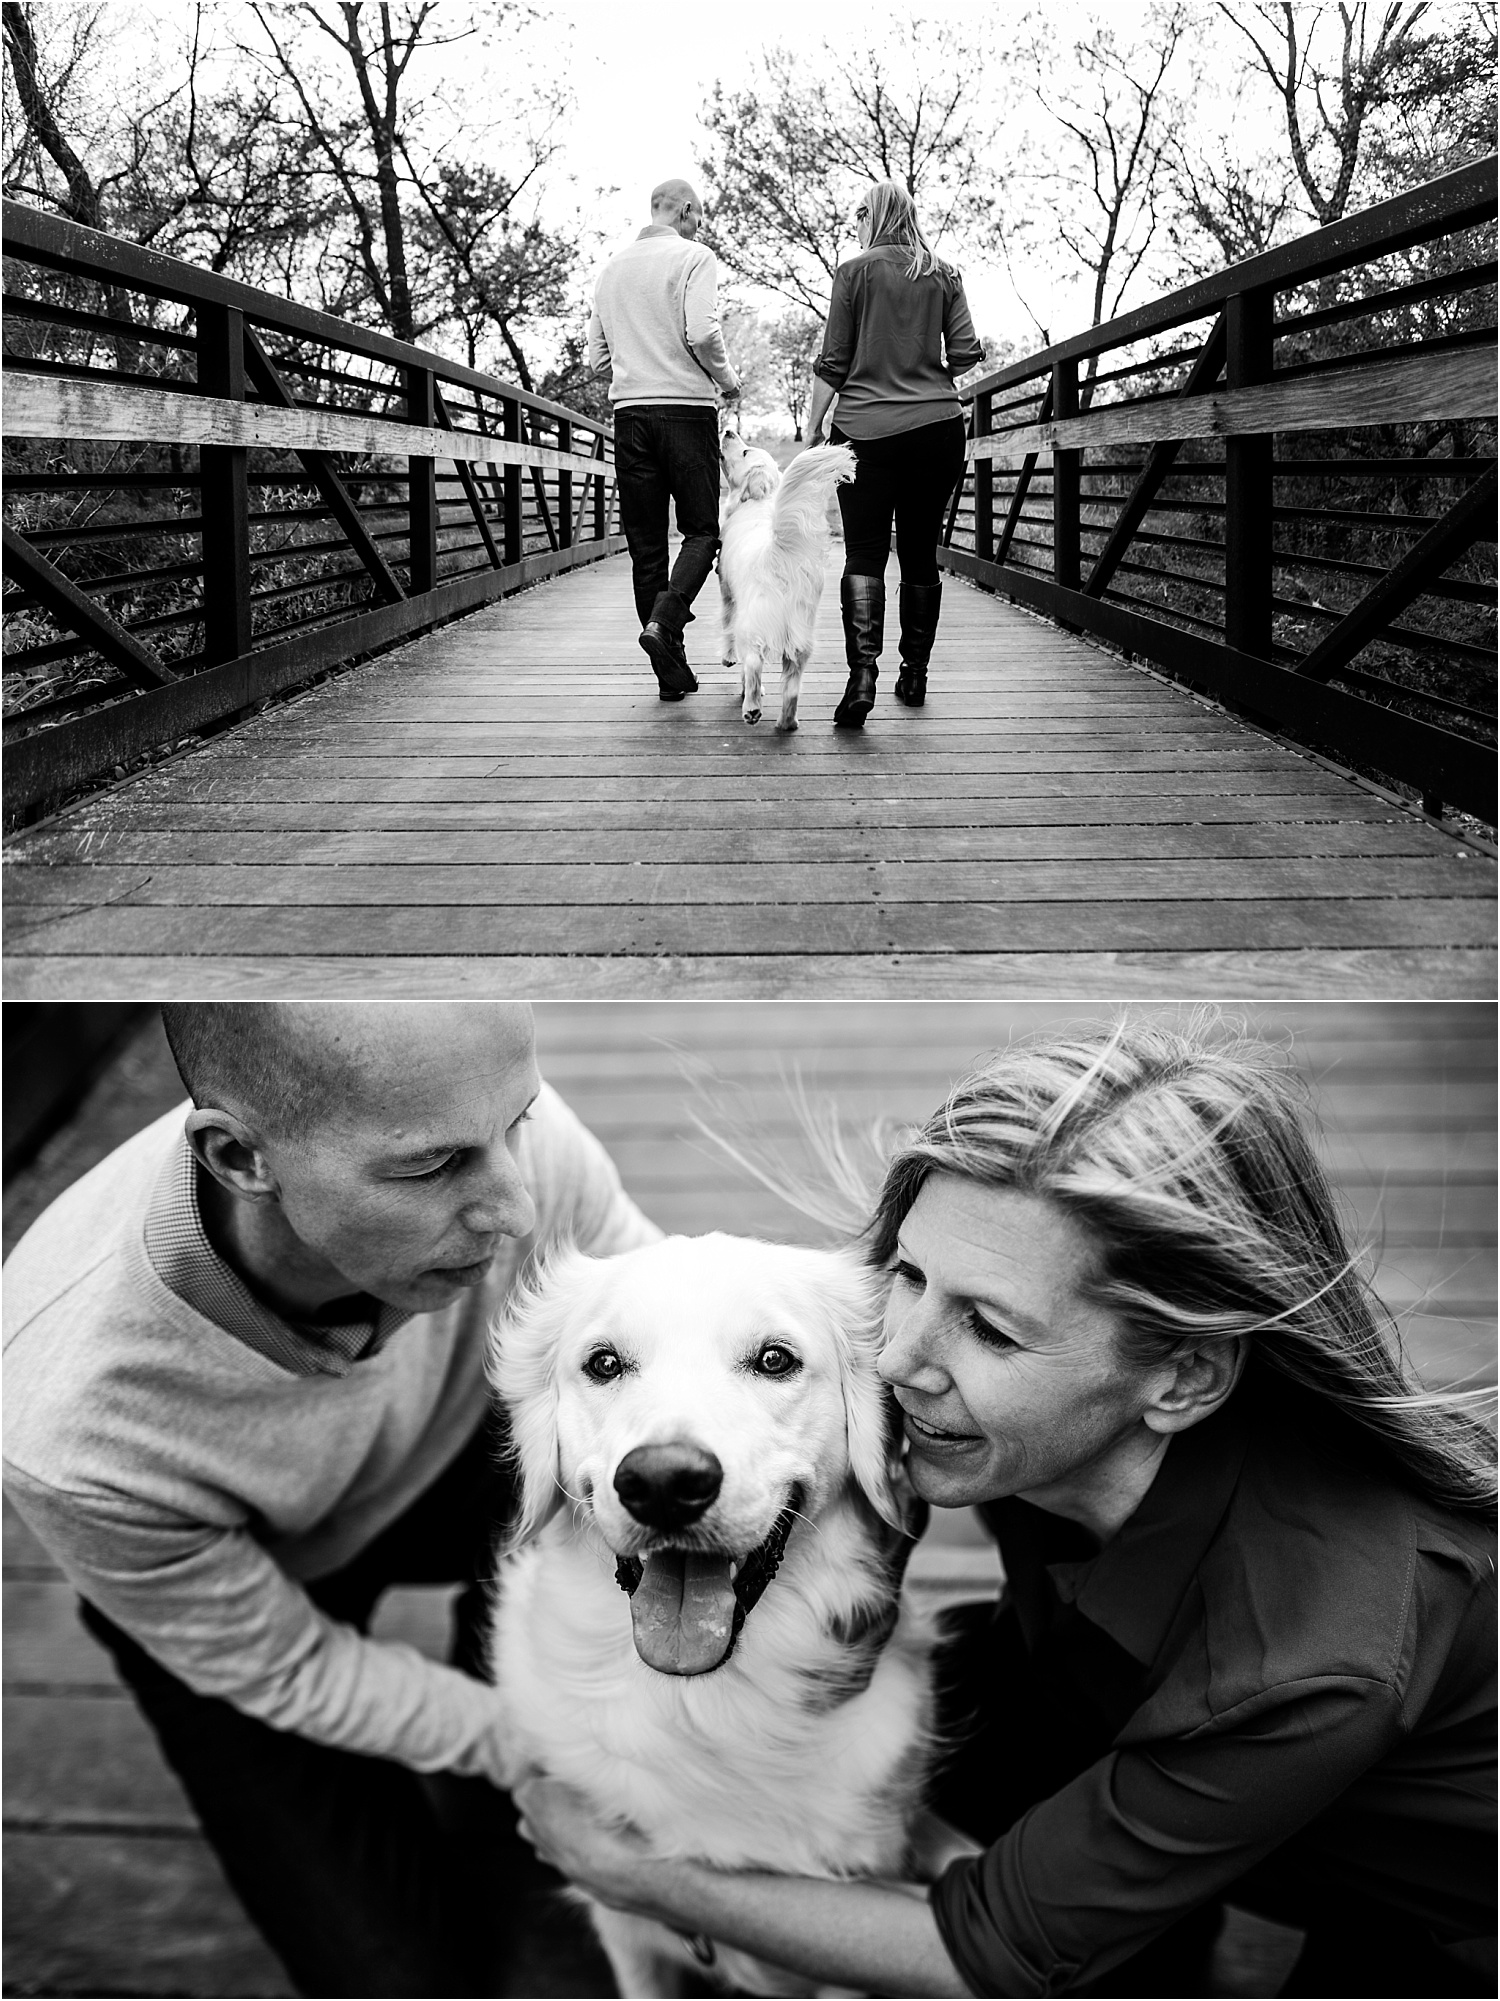 Engagement Photography Couple with their Golden Retriever Dog at Heritage Park Bridge in Olathe Kansas